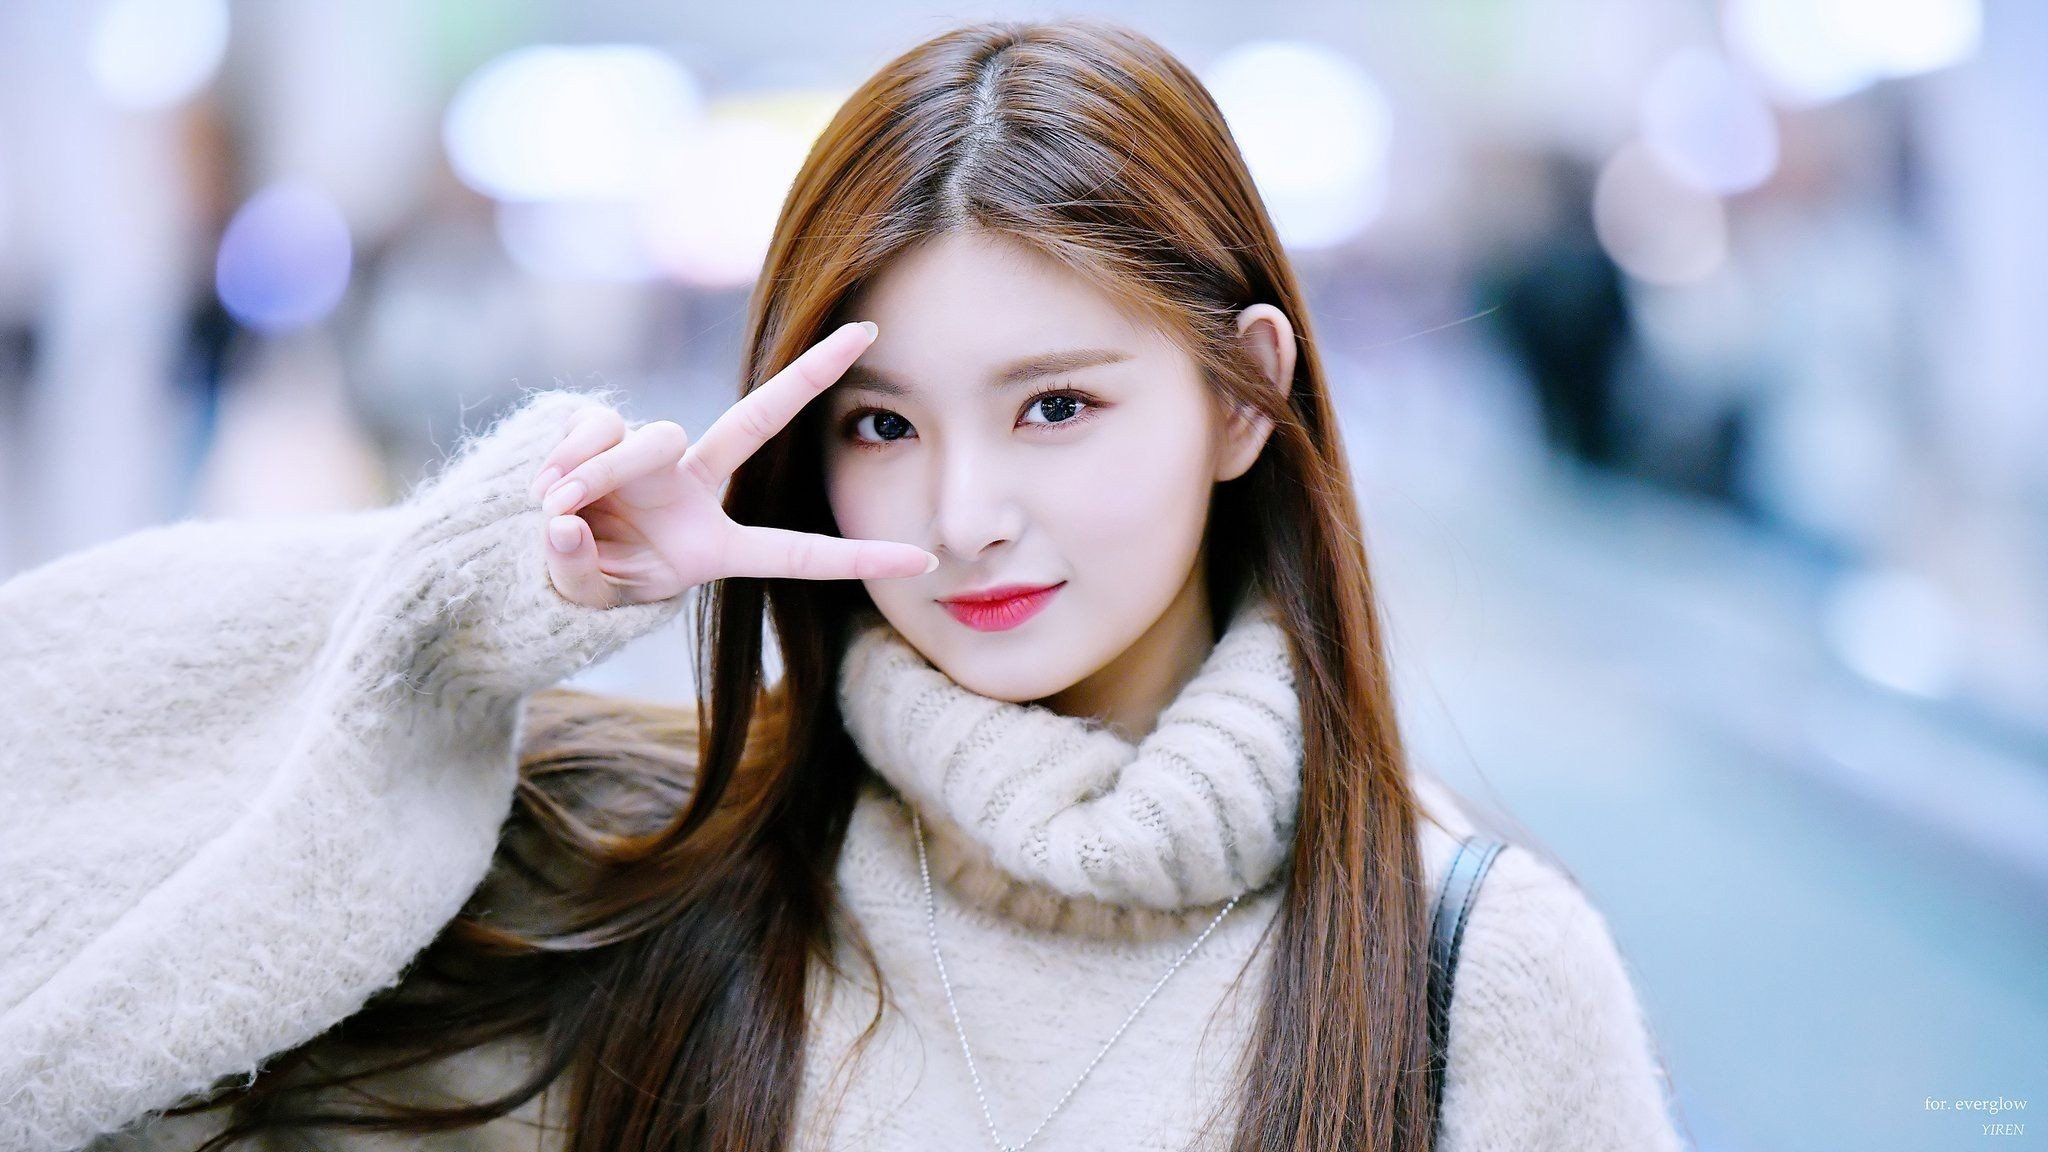 everglow yiren